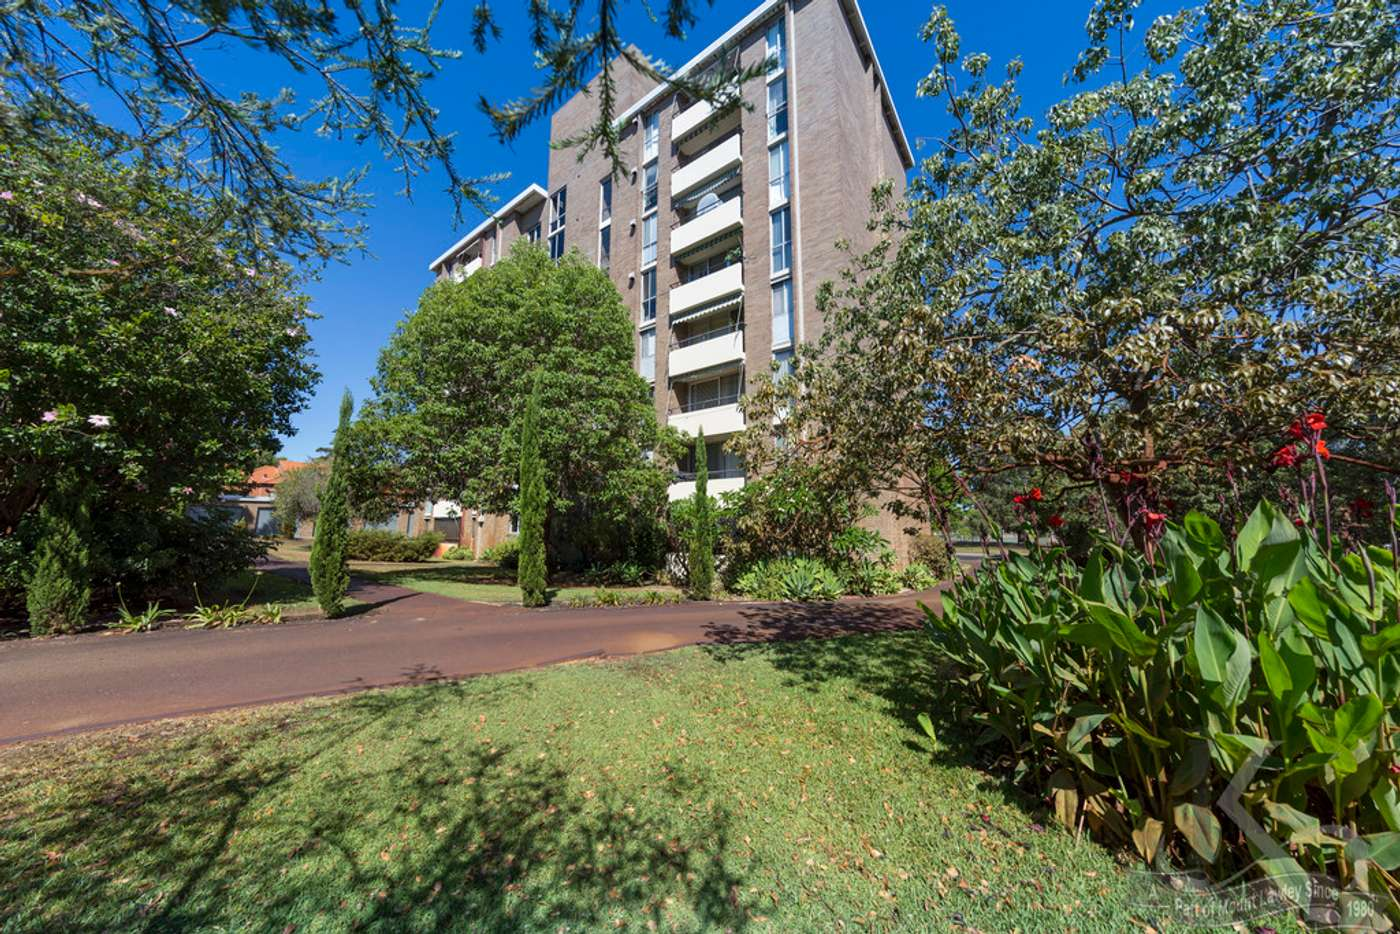 Main view of Homely apartment listing, 5/7 Clifton Crescent, Mount Lawley WA 6050